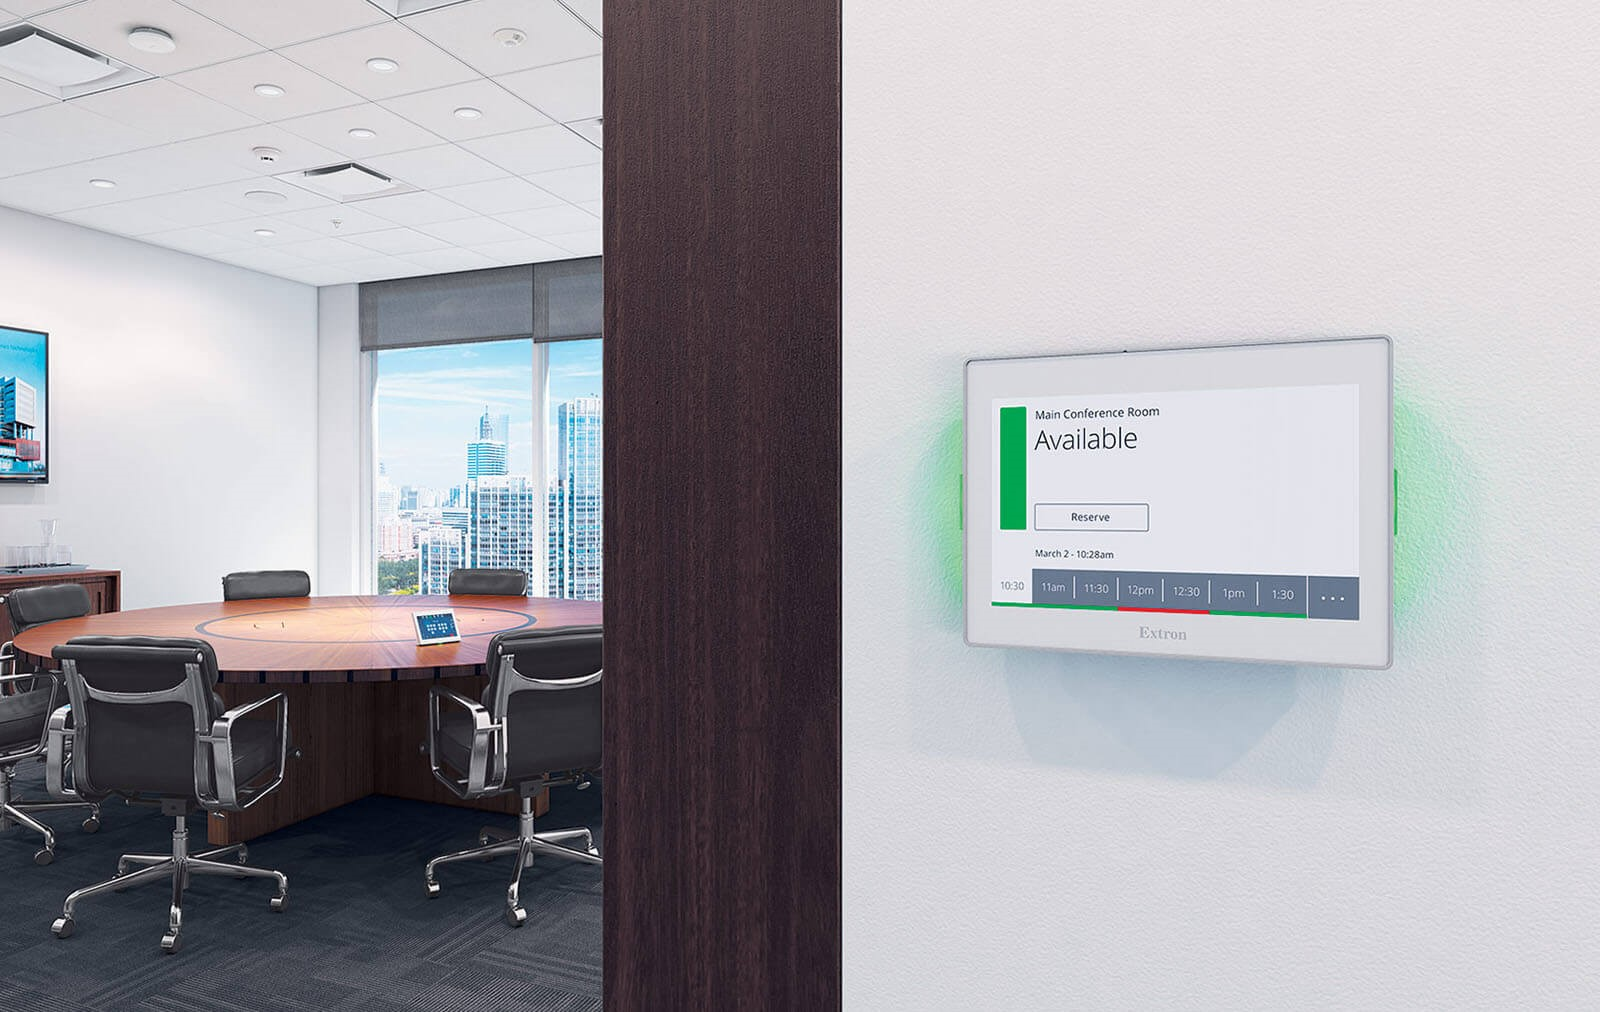 Meeting room booking system and Digital Signage displays